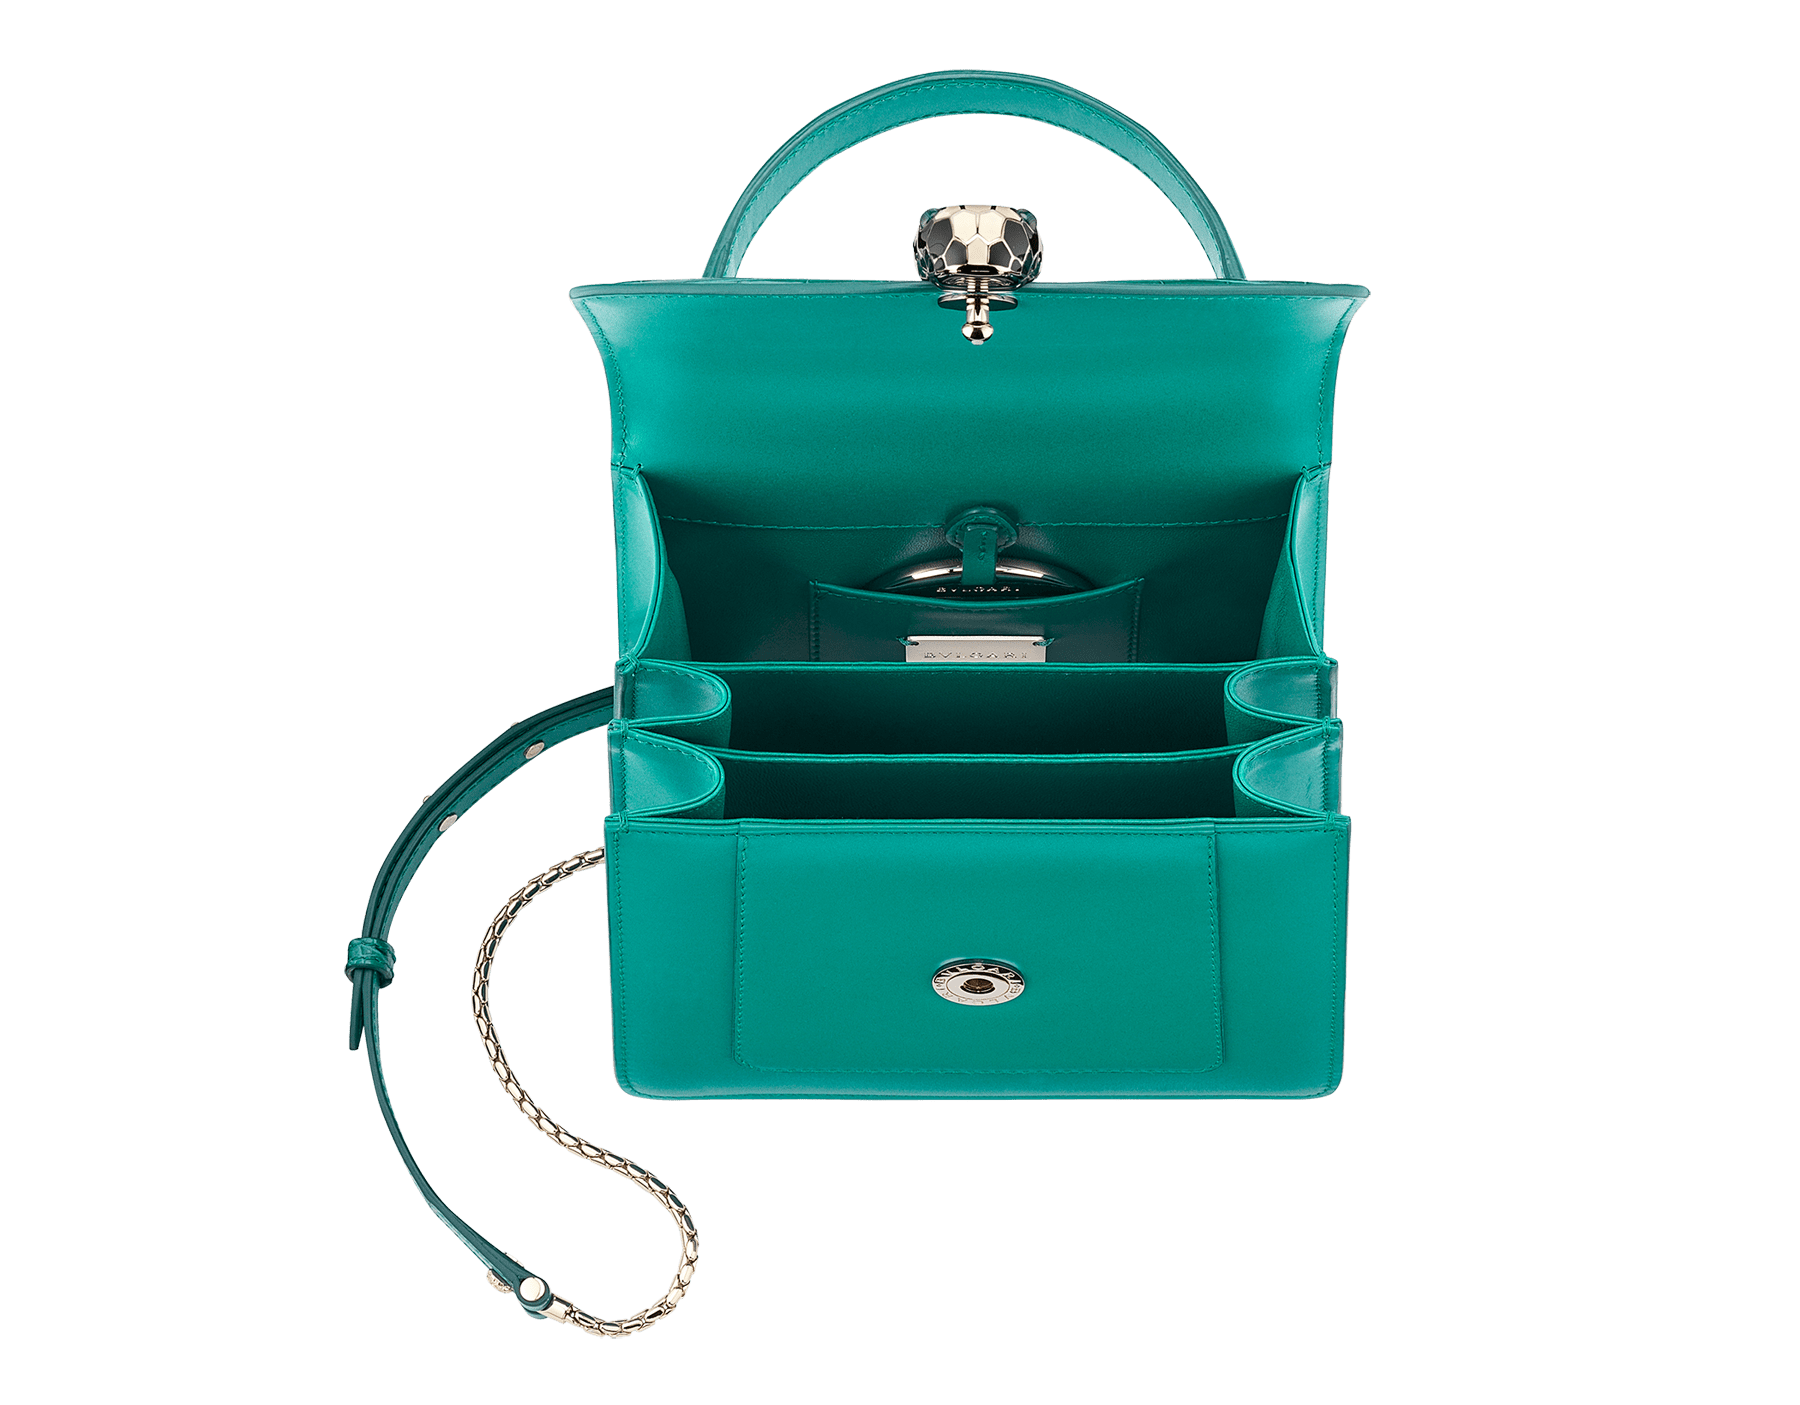 Serpenti Forever crossbody bag in tropical turquoise shiny croco skin and smooth calf leather. Snakehead closure in light gold plated brass decorated with black and white enamel, and green malachite eyes. 752-CLCR image 4